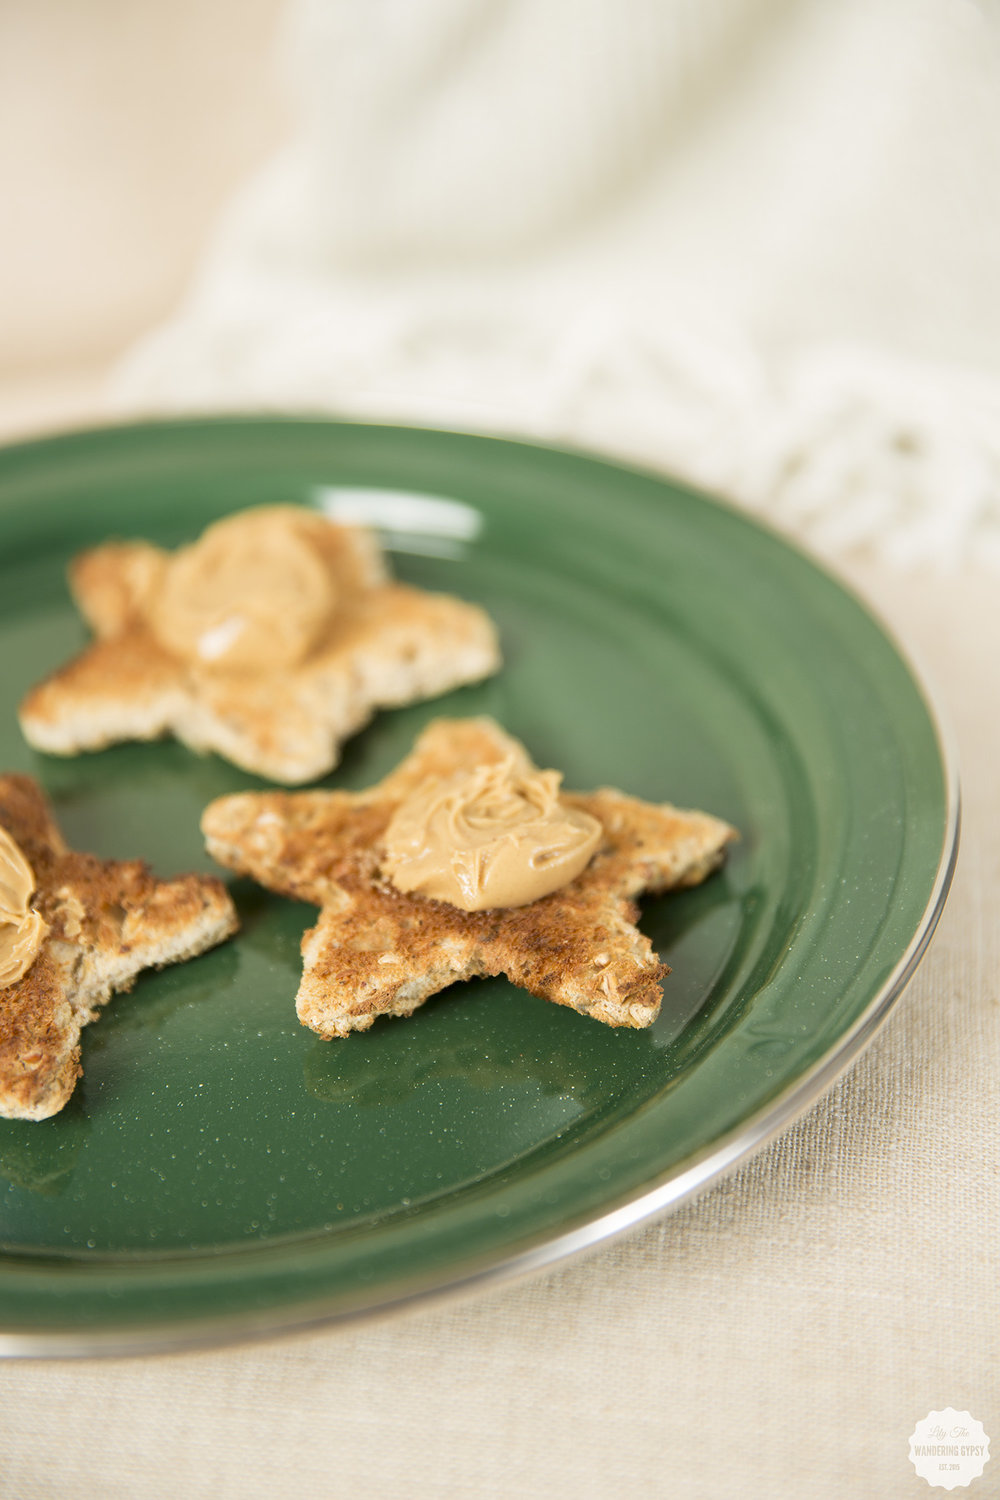 Star Toast + Peanut Butter